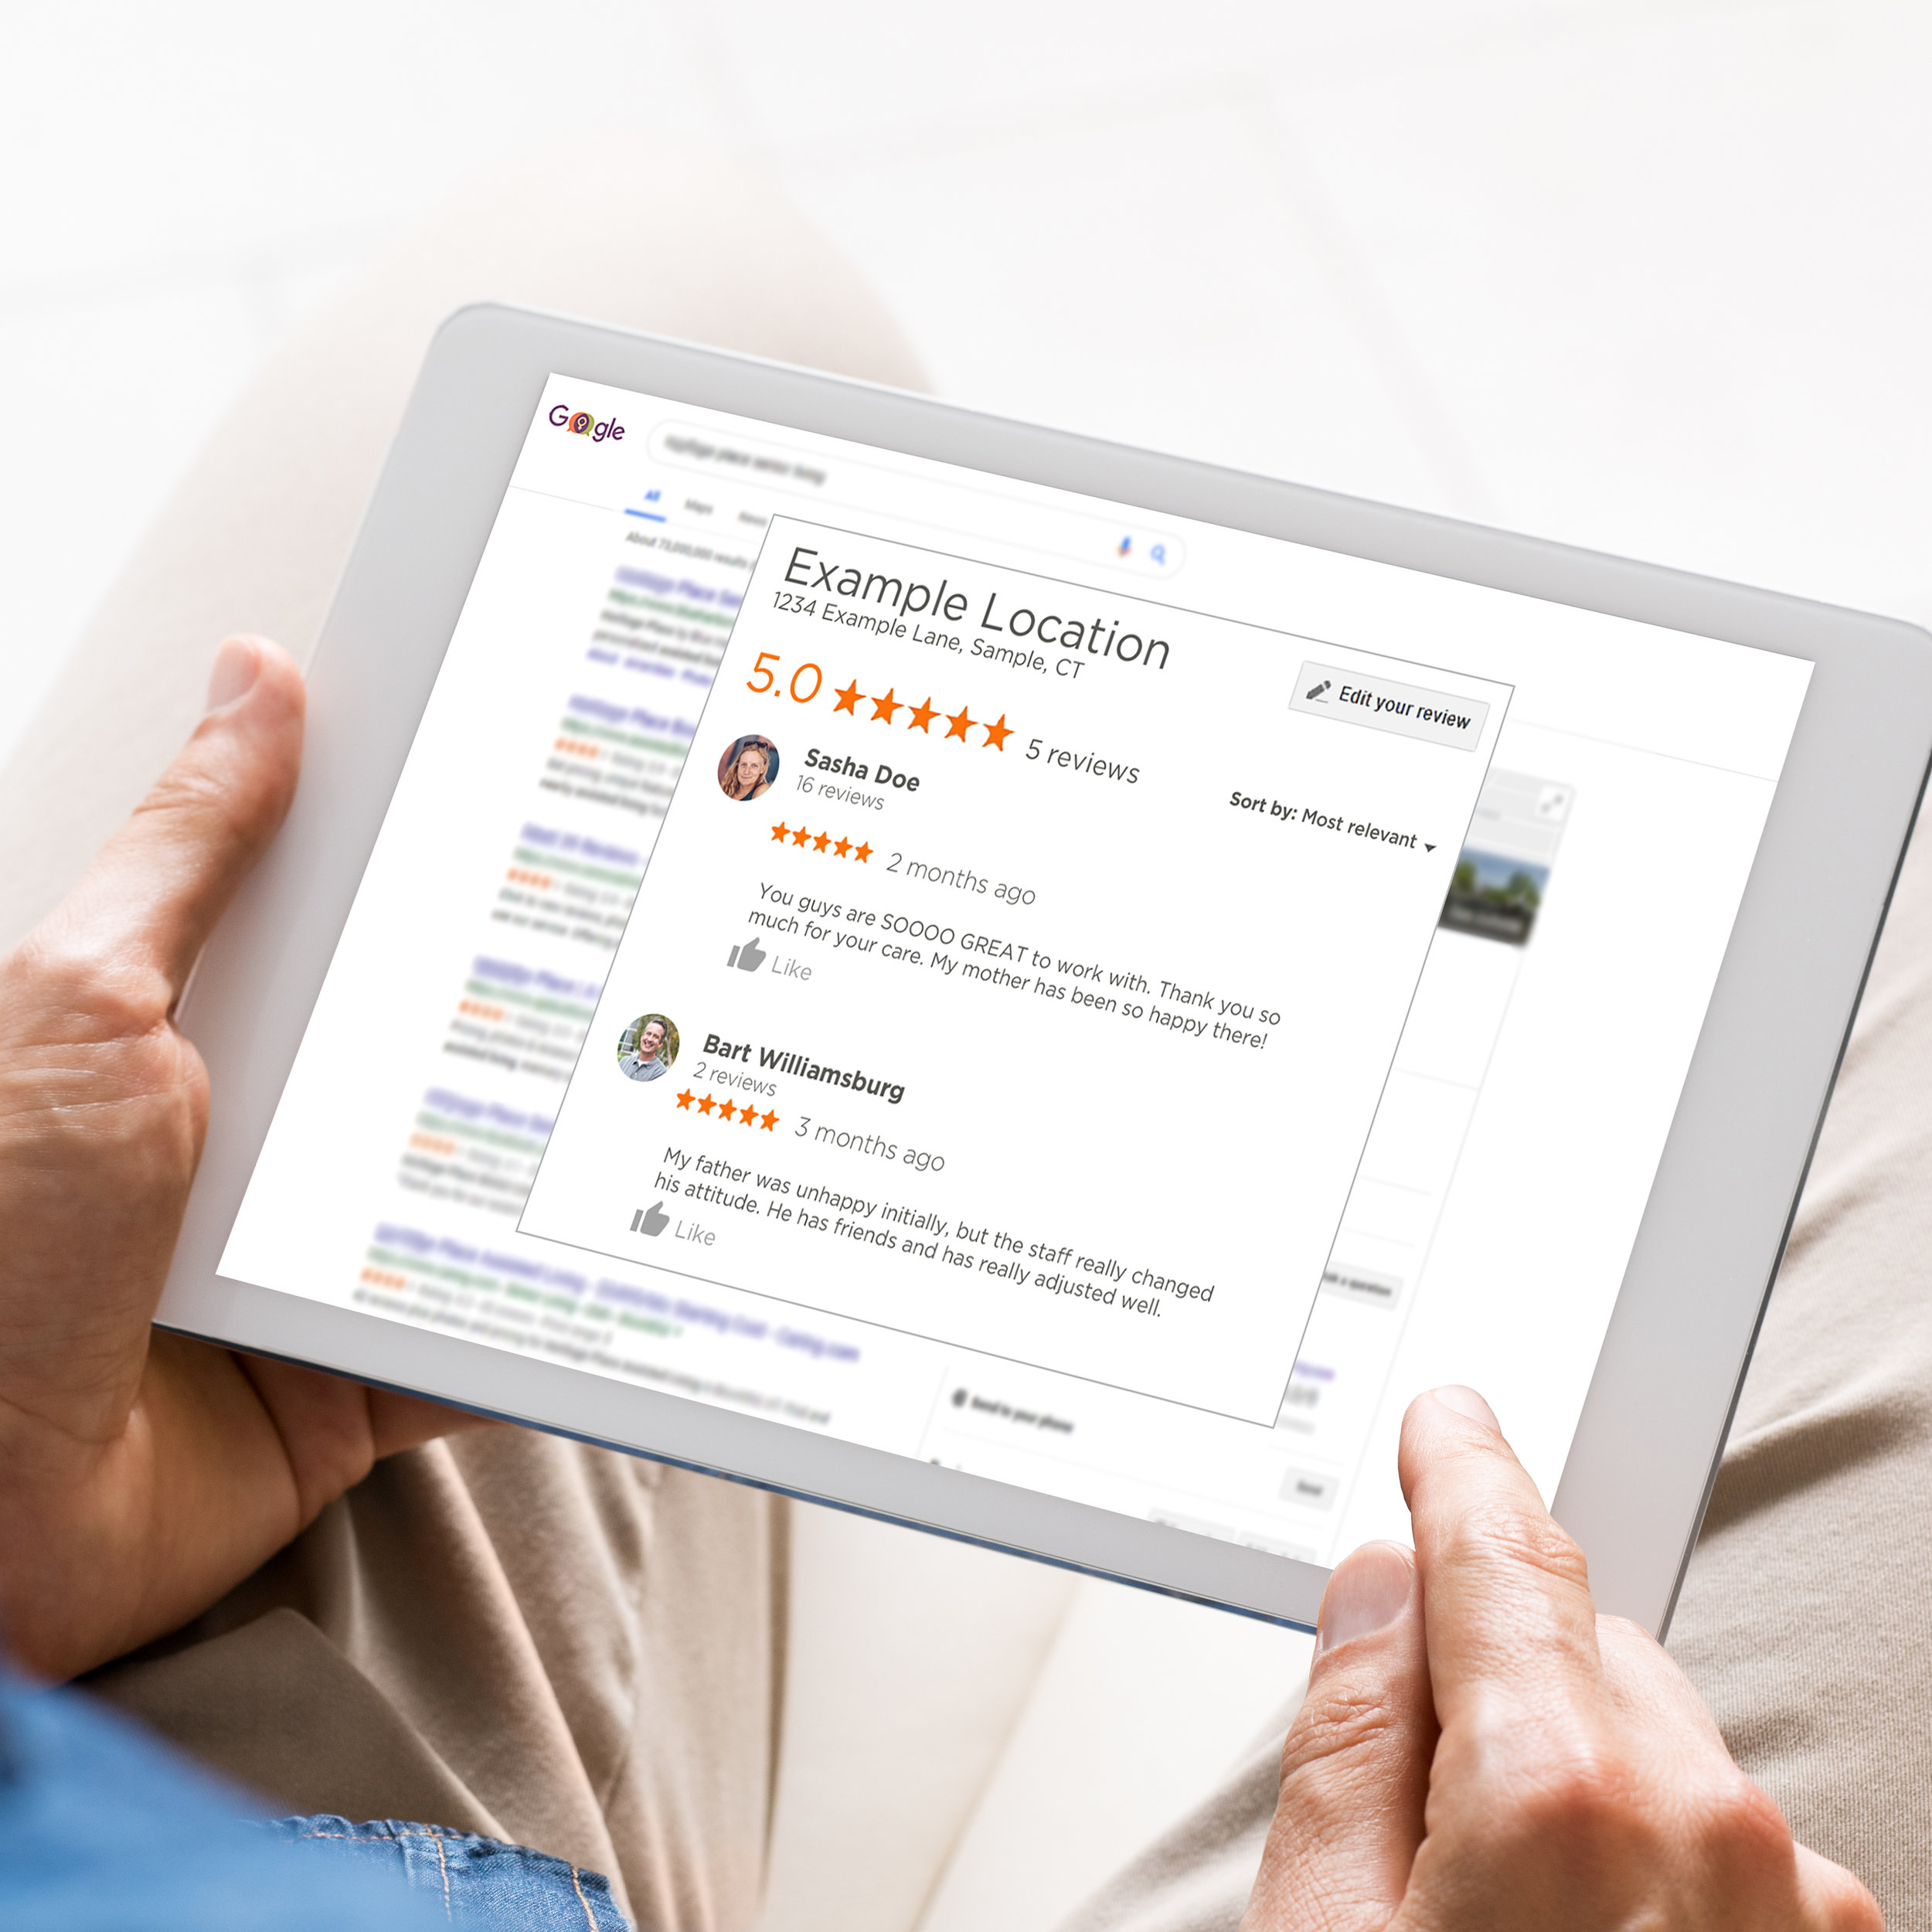 iPad Man Pointing to the Google Review